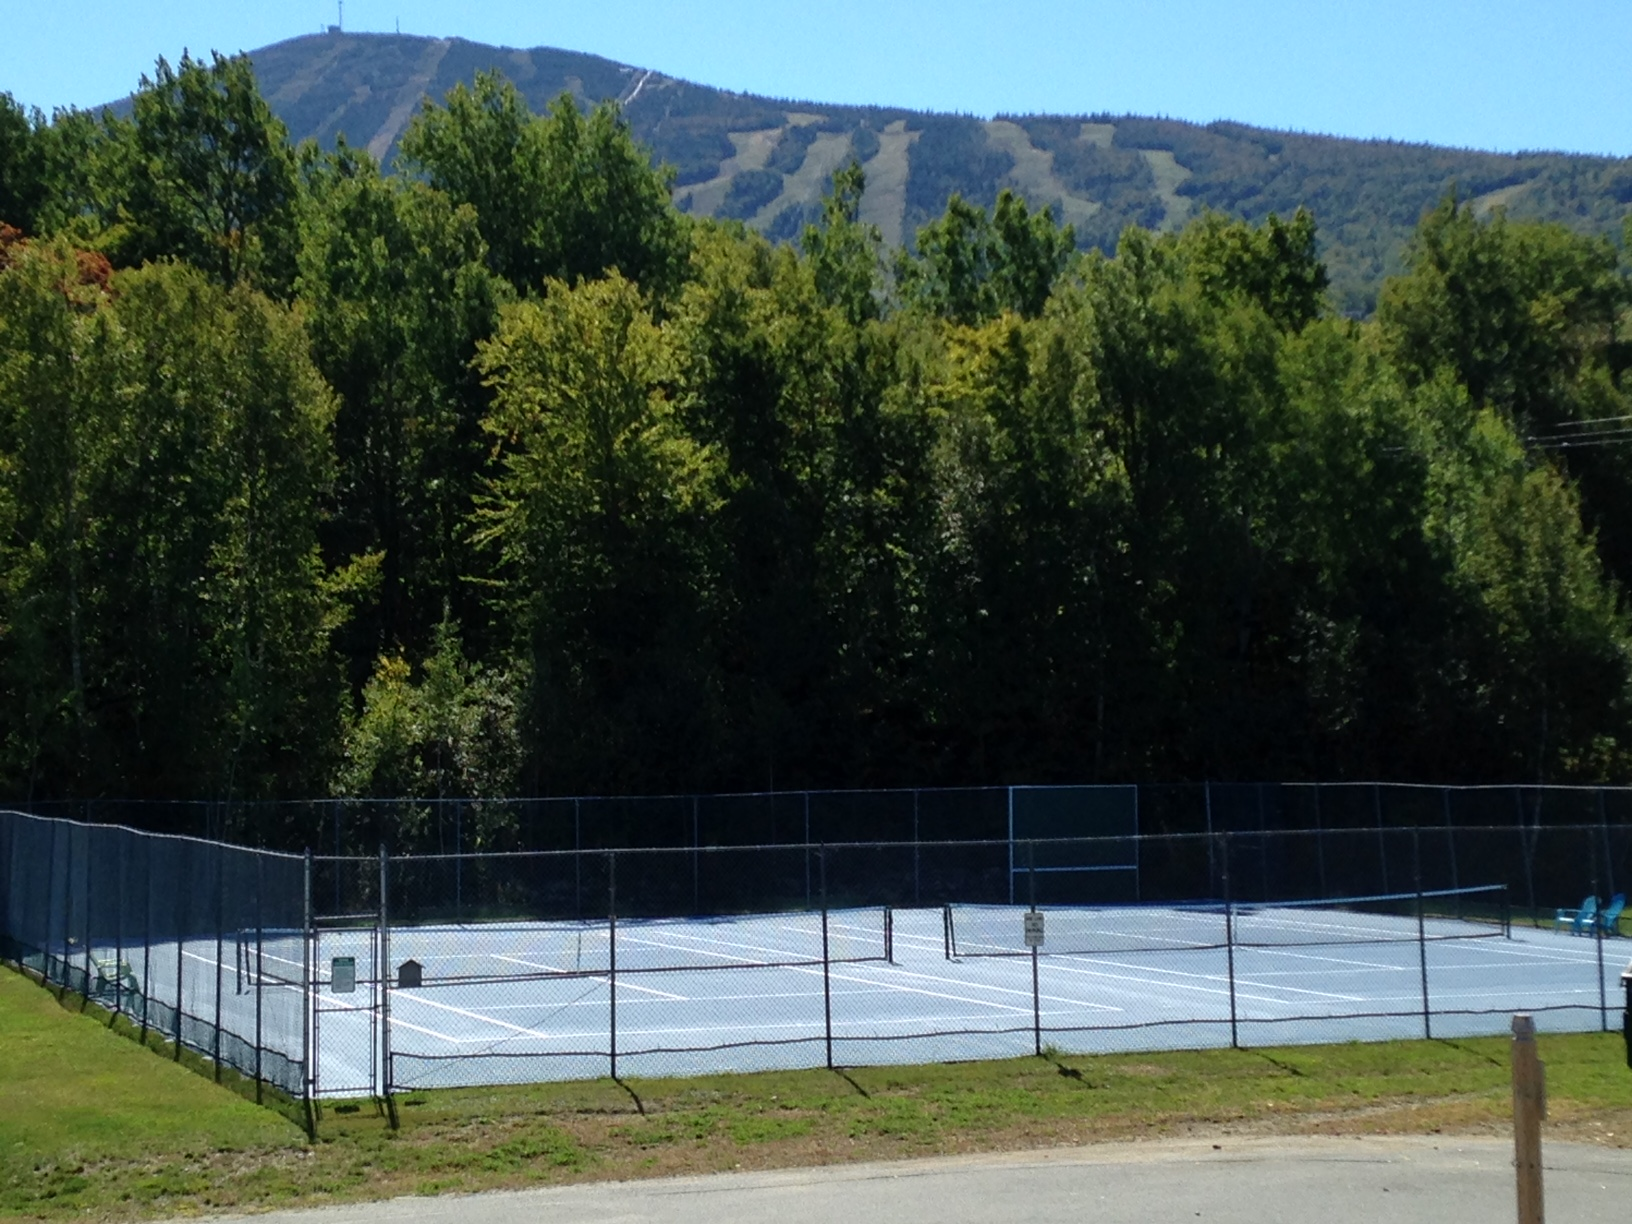 Snowbrook's Tennis Courts